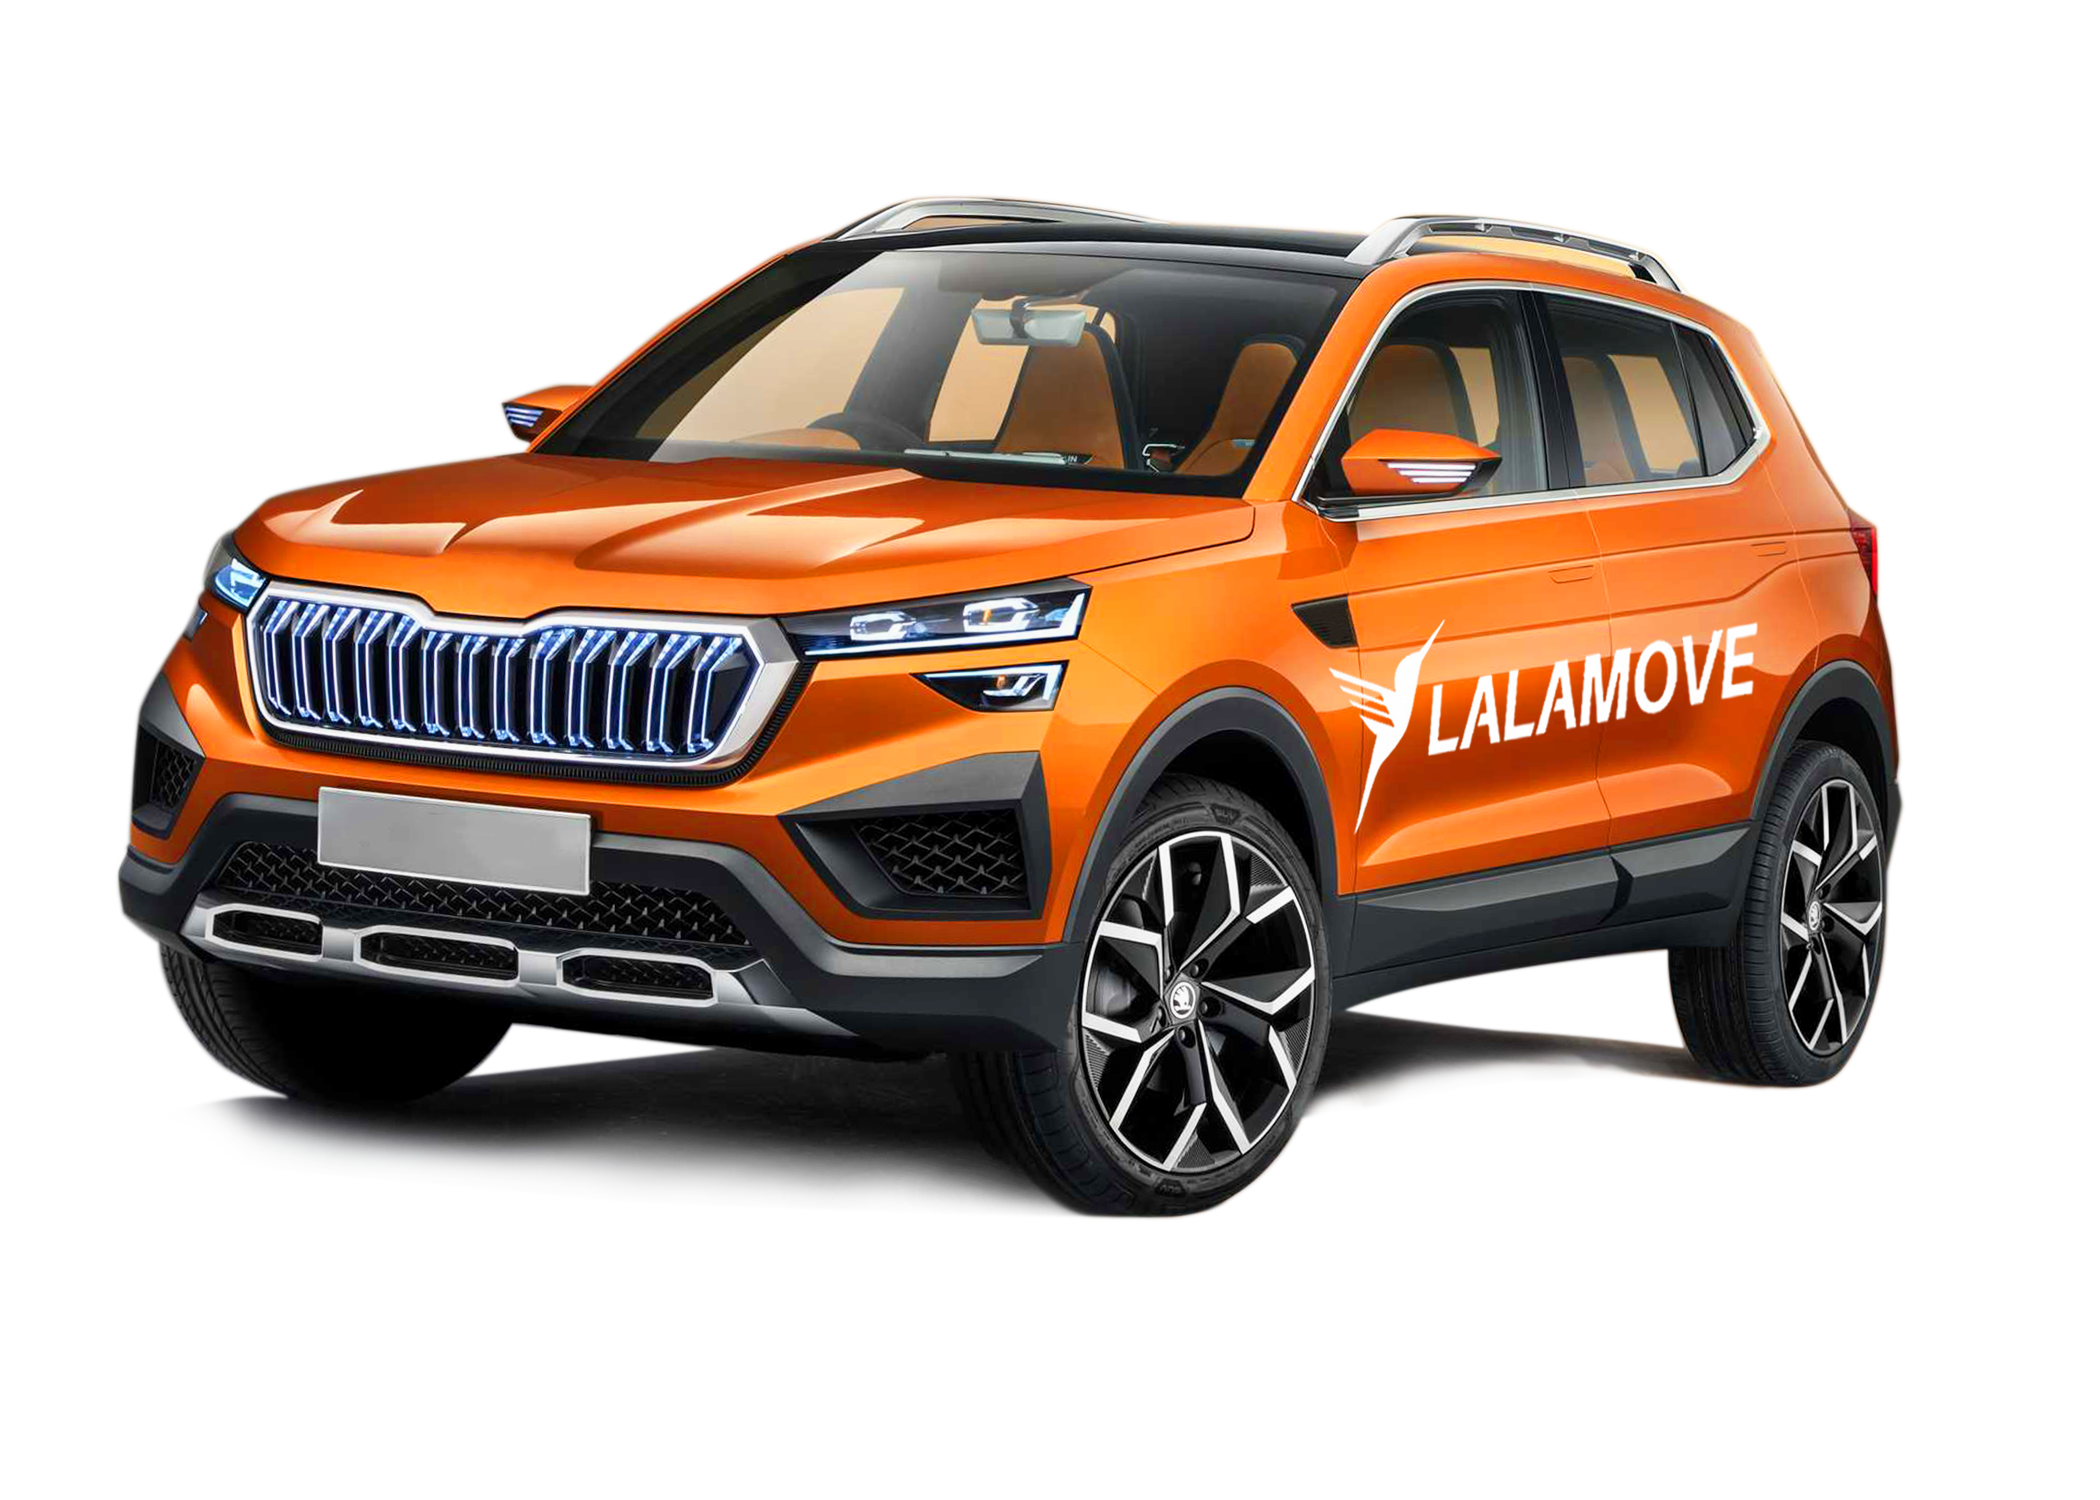 New Vehicle LALAMOVE_SUV